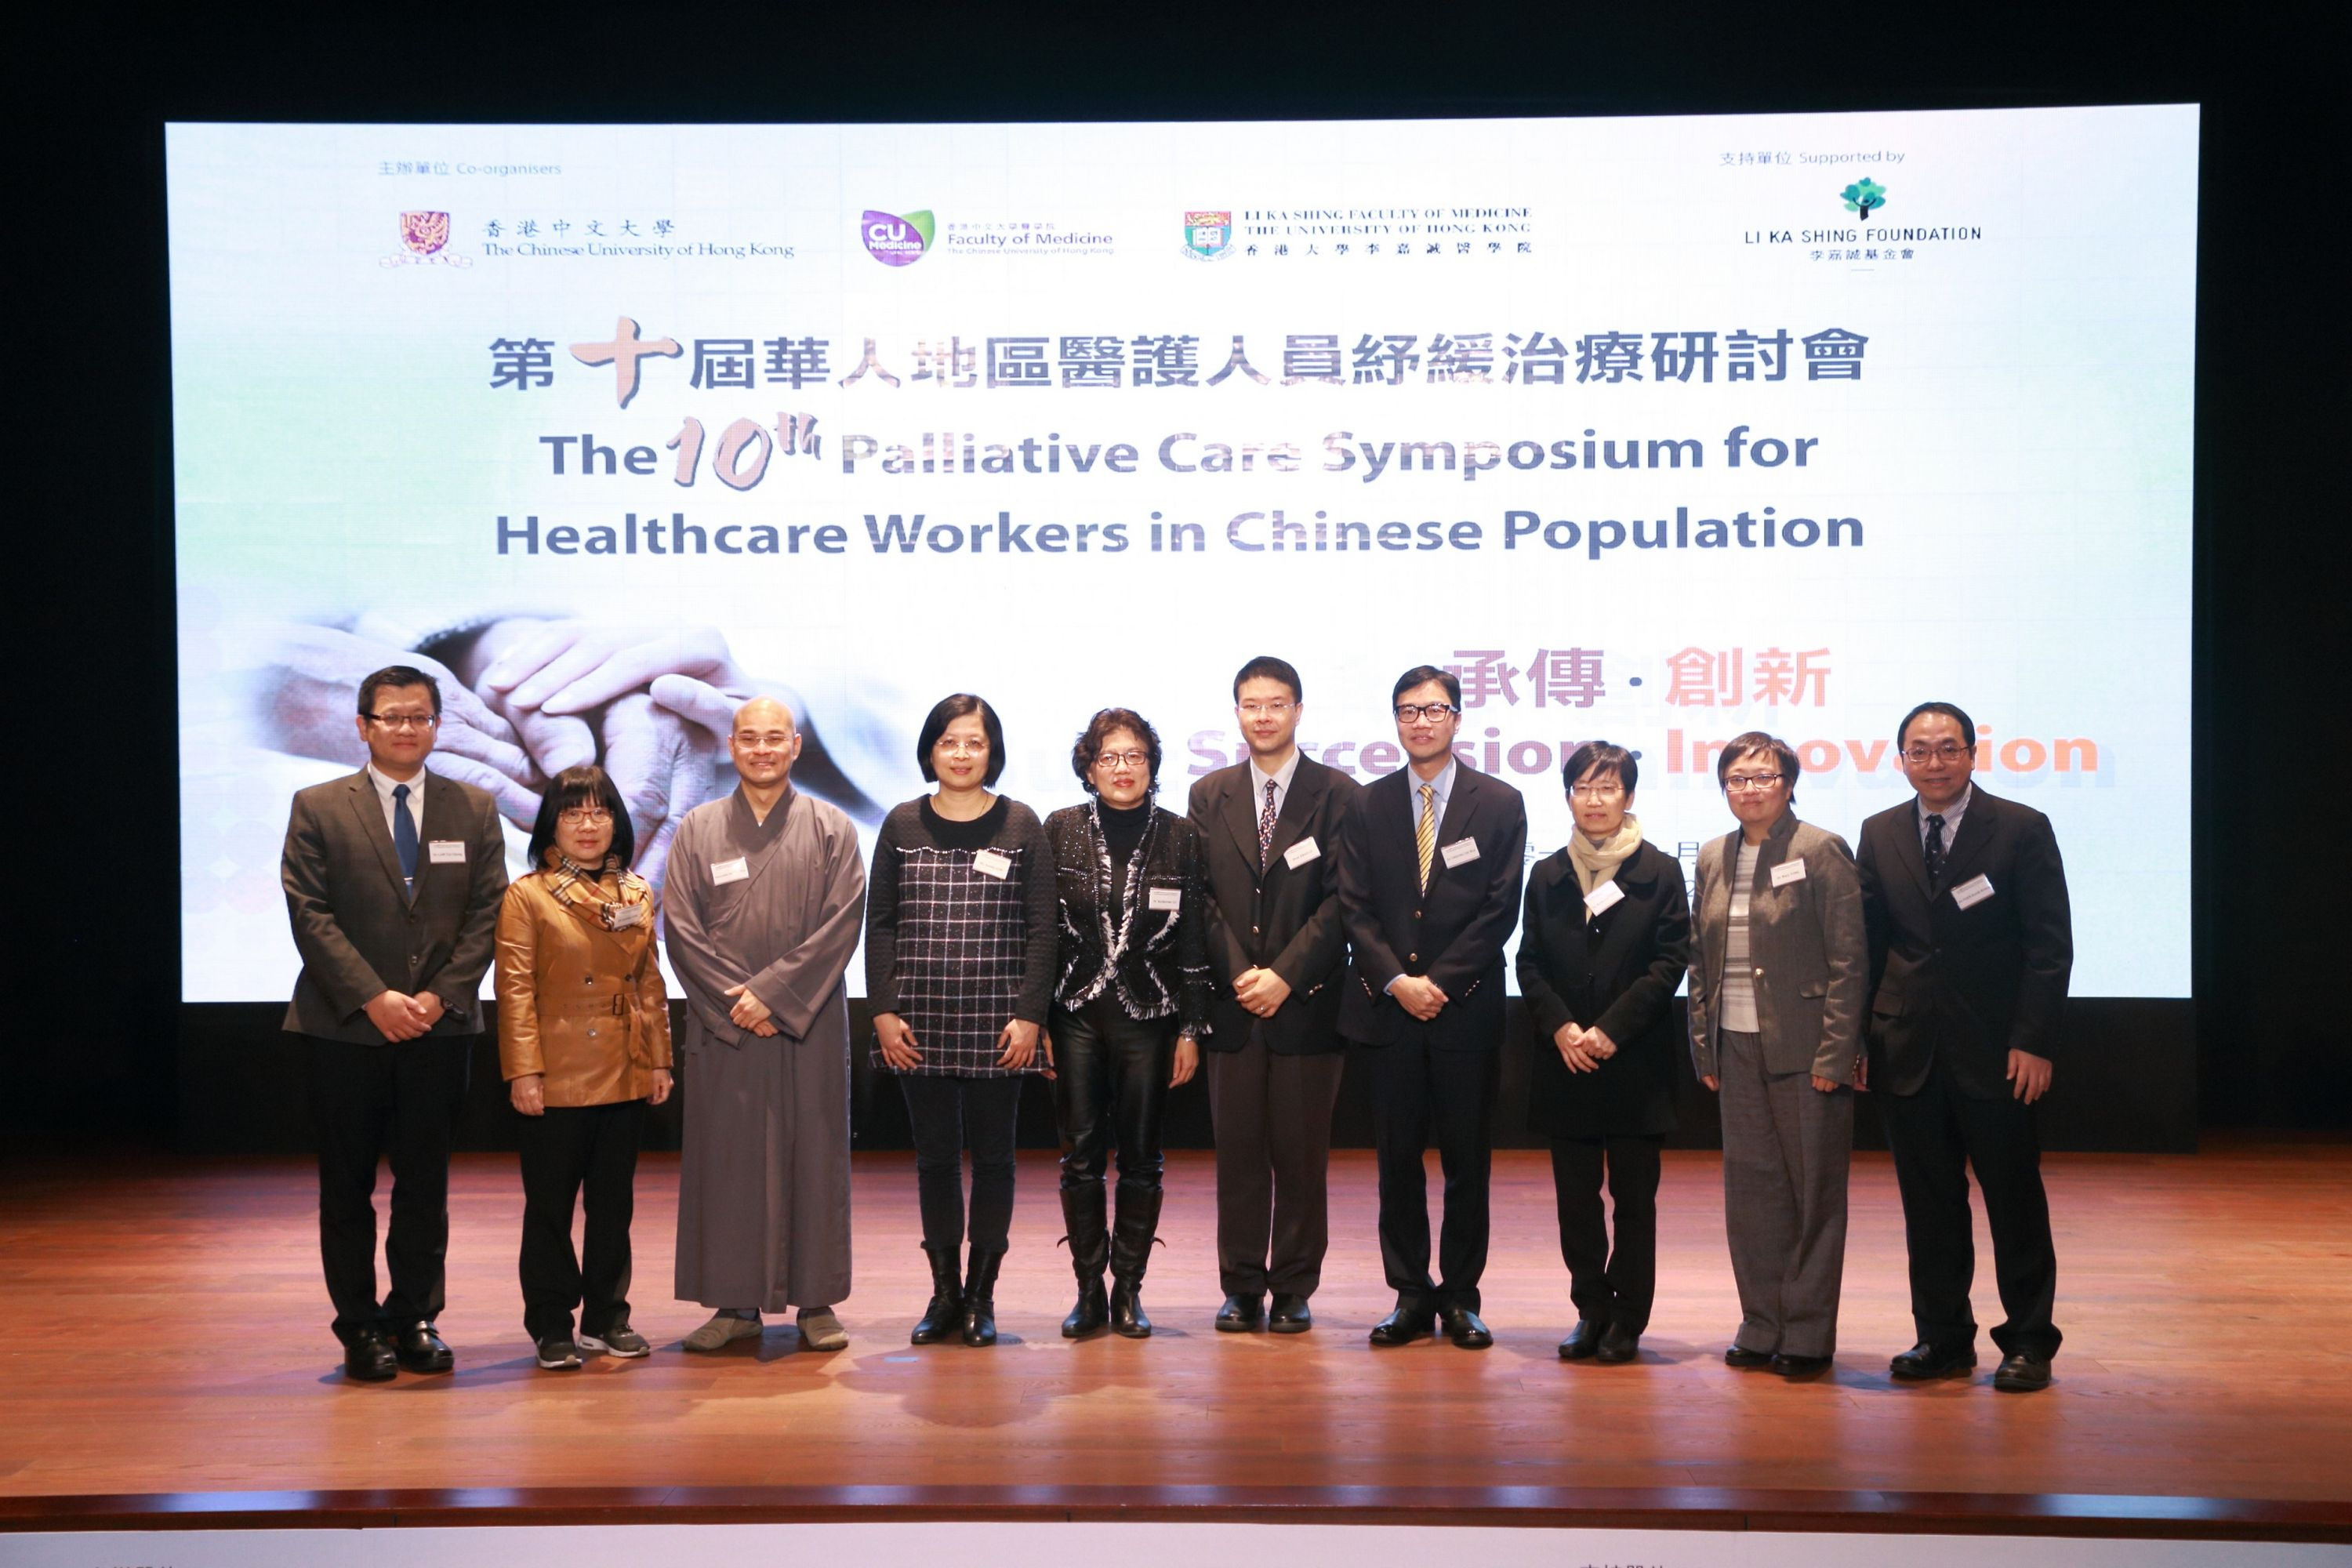 Over 180 local healthcare professionals attend the 10th Palliative Care Symposium for Healthcare Workers in Chinese Population, including Dr Katherine LO, Senior Project Manager of the Li Ka Shing Foundation (5th left); Prof Albert Martin LI, Assistant Dean (Education) of the Faculty of Medicine at CUHK (5th right); Dr CHEUNG Chi Wai, Assistant Dean (Private Sector Liaison) of the Li Ka Shing Faculty of Medicine at HKU (4th right); the Venerable Shi Tian Wen, Master Lecturer of Tsz Shan Monastery (3rd left); Dr LAM Tai Chung, Clinical Assistant Professor of the Department of Clinical Oncology of the Li Ka Shing Faculty of Medicine at HKU (1st left); Dr Rebecca YEUNG, Chief of Service of the Department of Clinical Oncology of the Pamela Youde Nethersole Eastern Hospital (3rd right); and Dr Jennifer YIM, Centre-in-charge of Tsz Shan Monastery Spiritual Counselling Centre (2nd left).